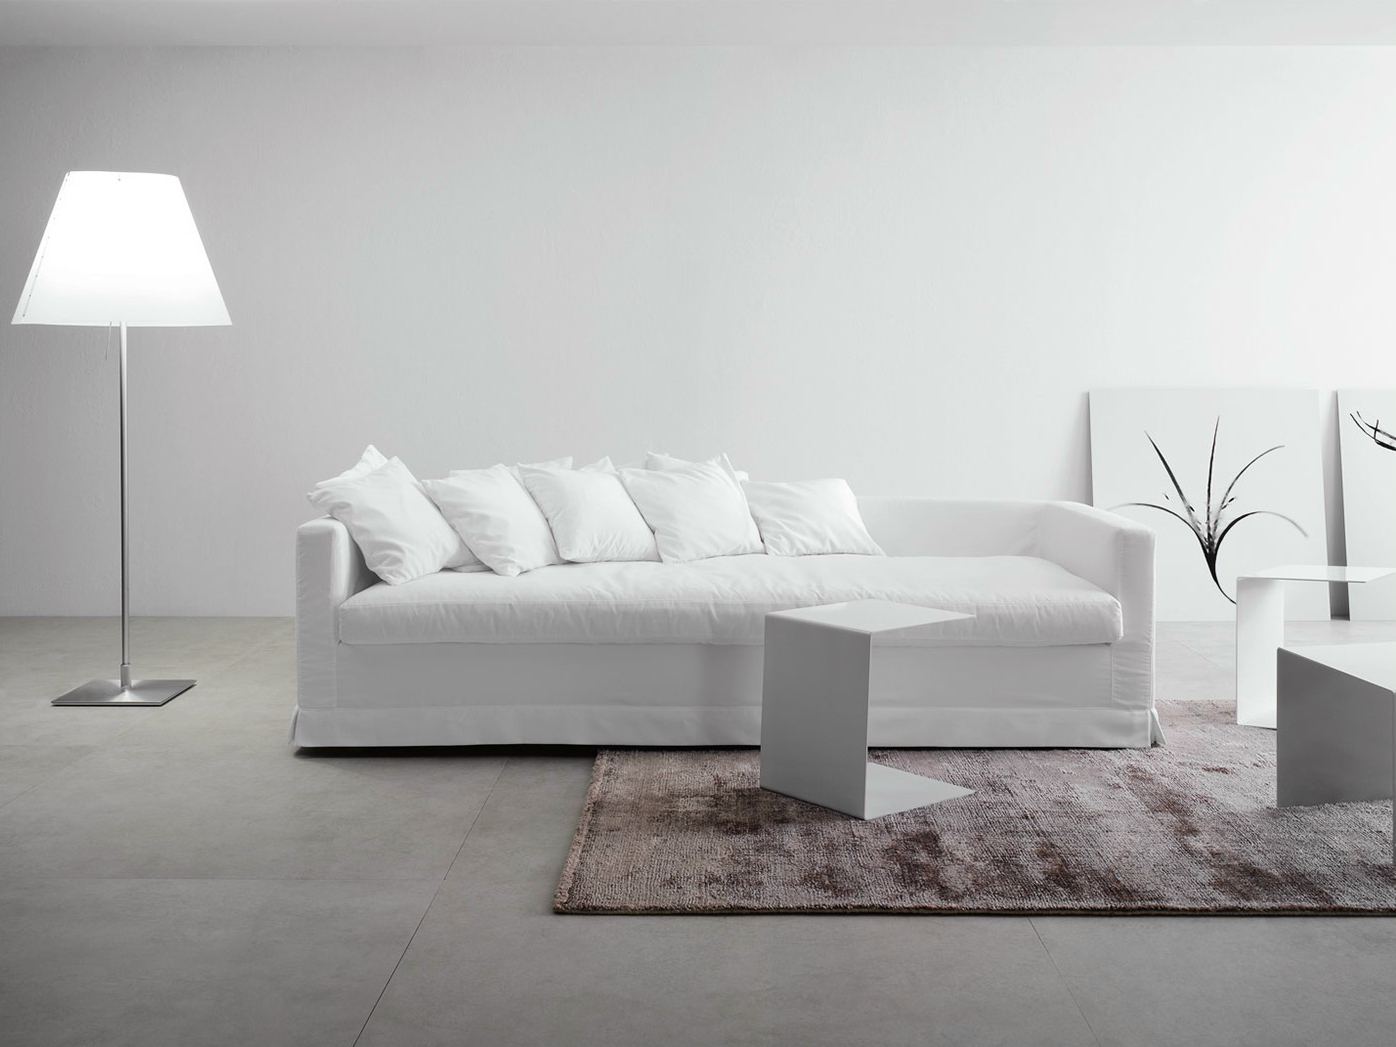 otto sofa by pianca design aldo cibic. Black Bedroom Furniture Sets. Home Design Ideas